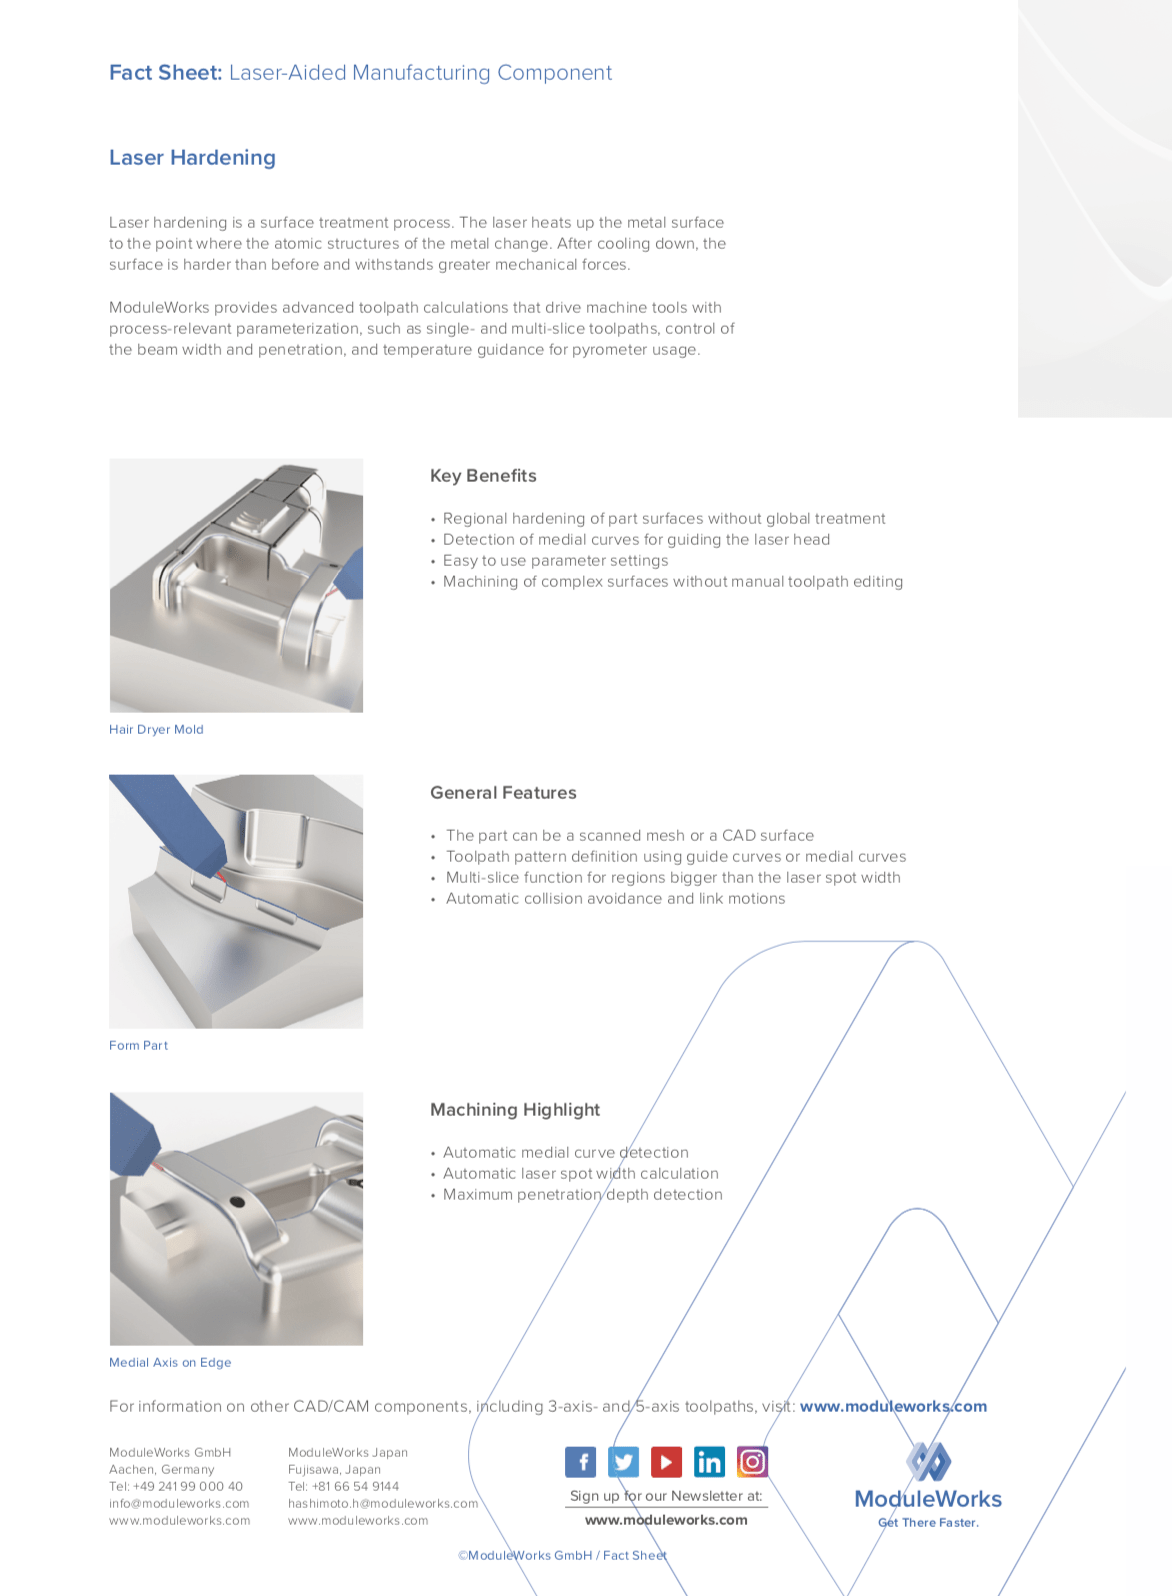 ModuleWorks_laser-aided_manufacturing_component_factsheet